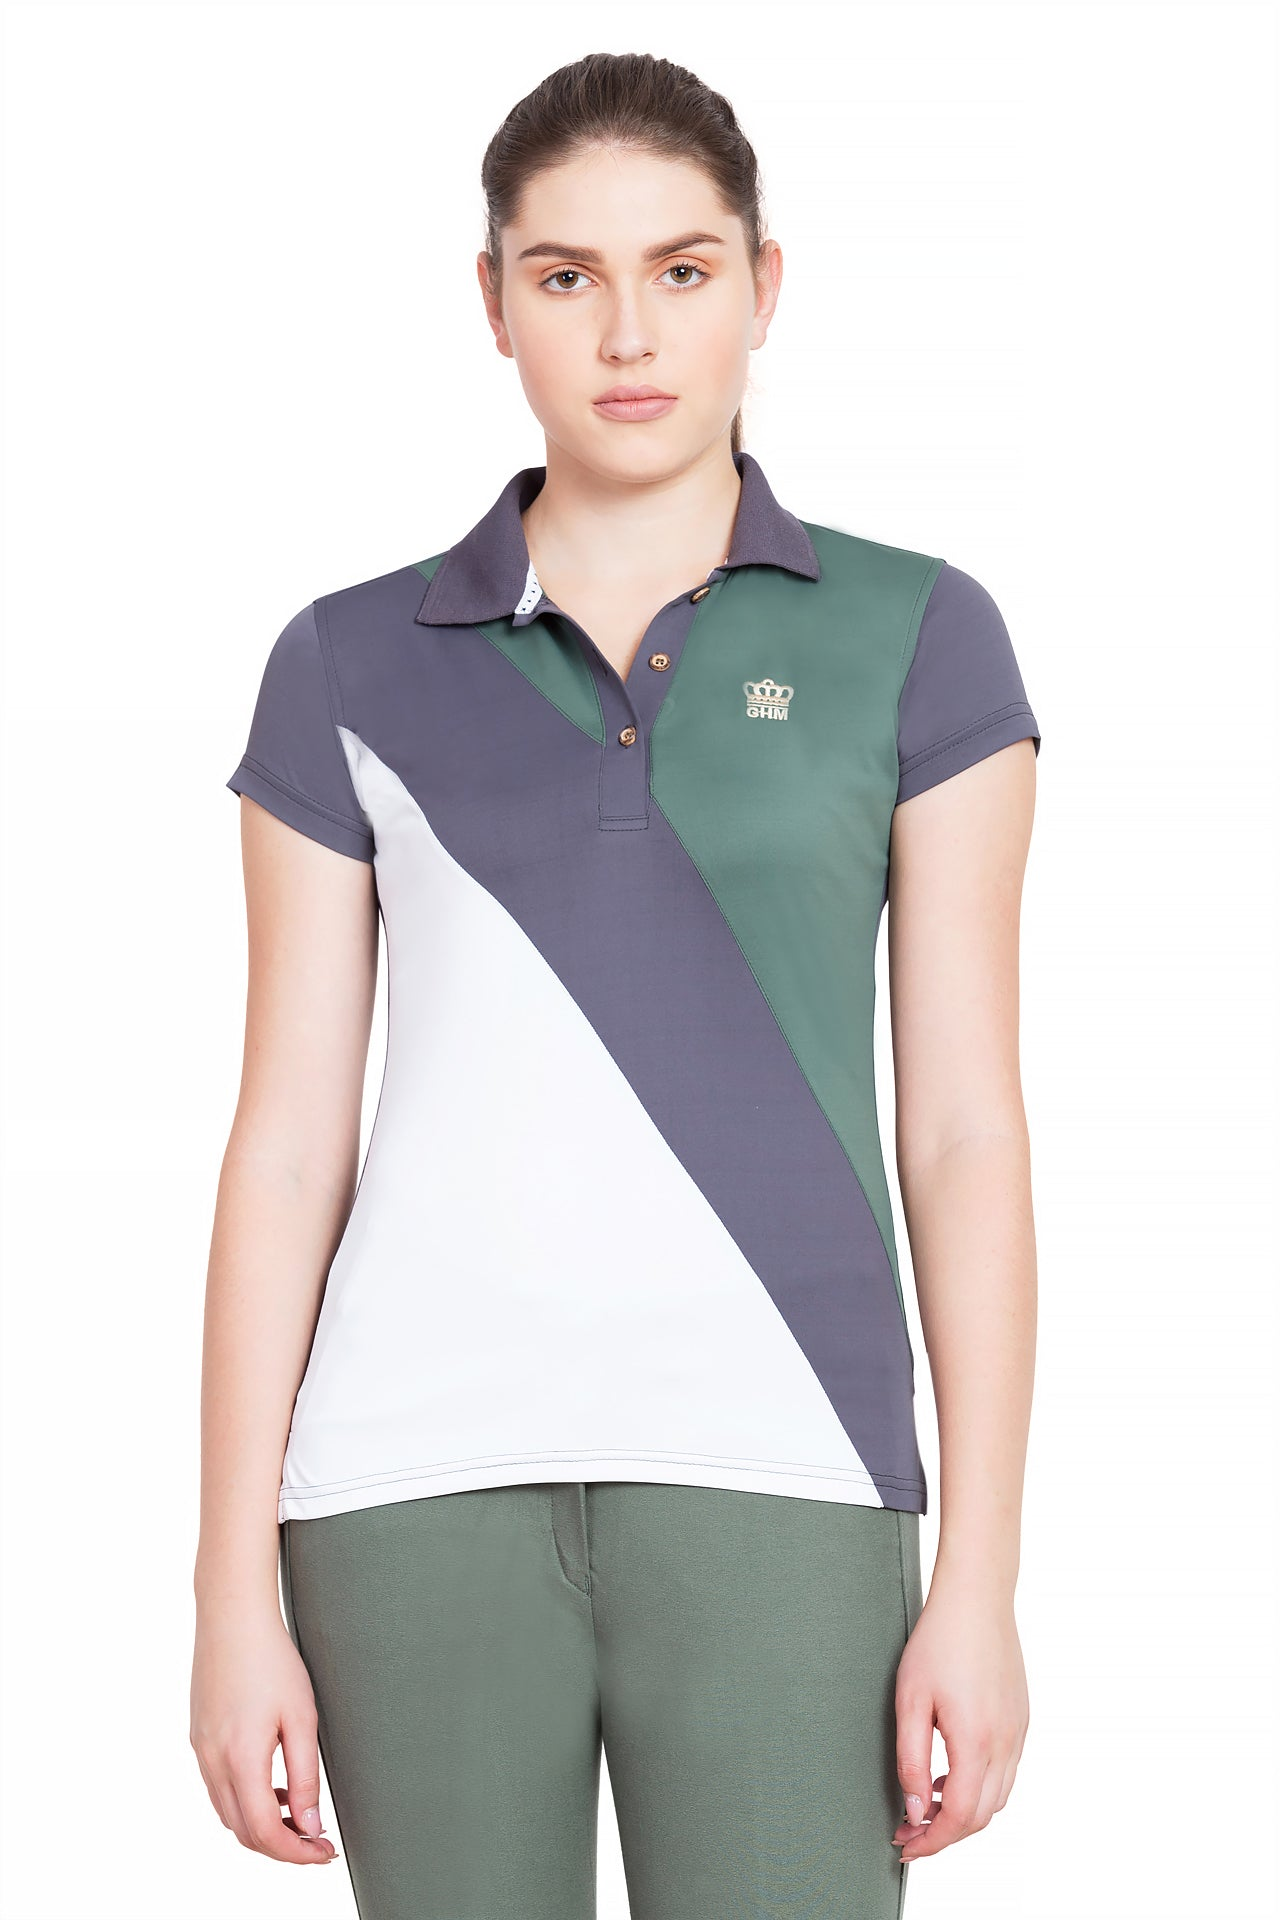 George H Morris Ladies Pro Sport Short Sleeve Polo Sport Shirt_1682